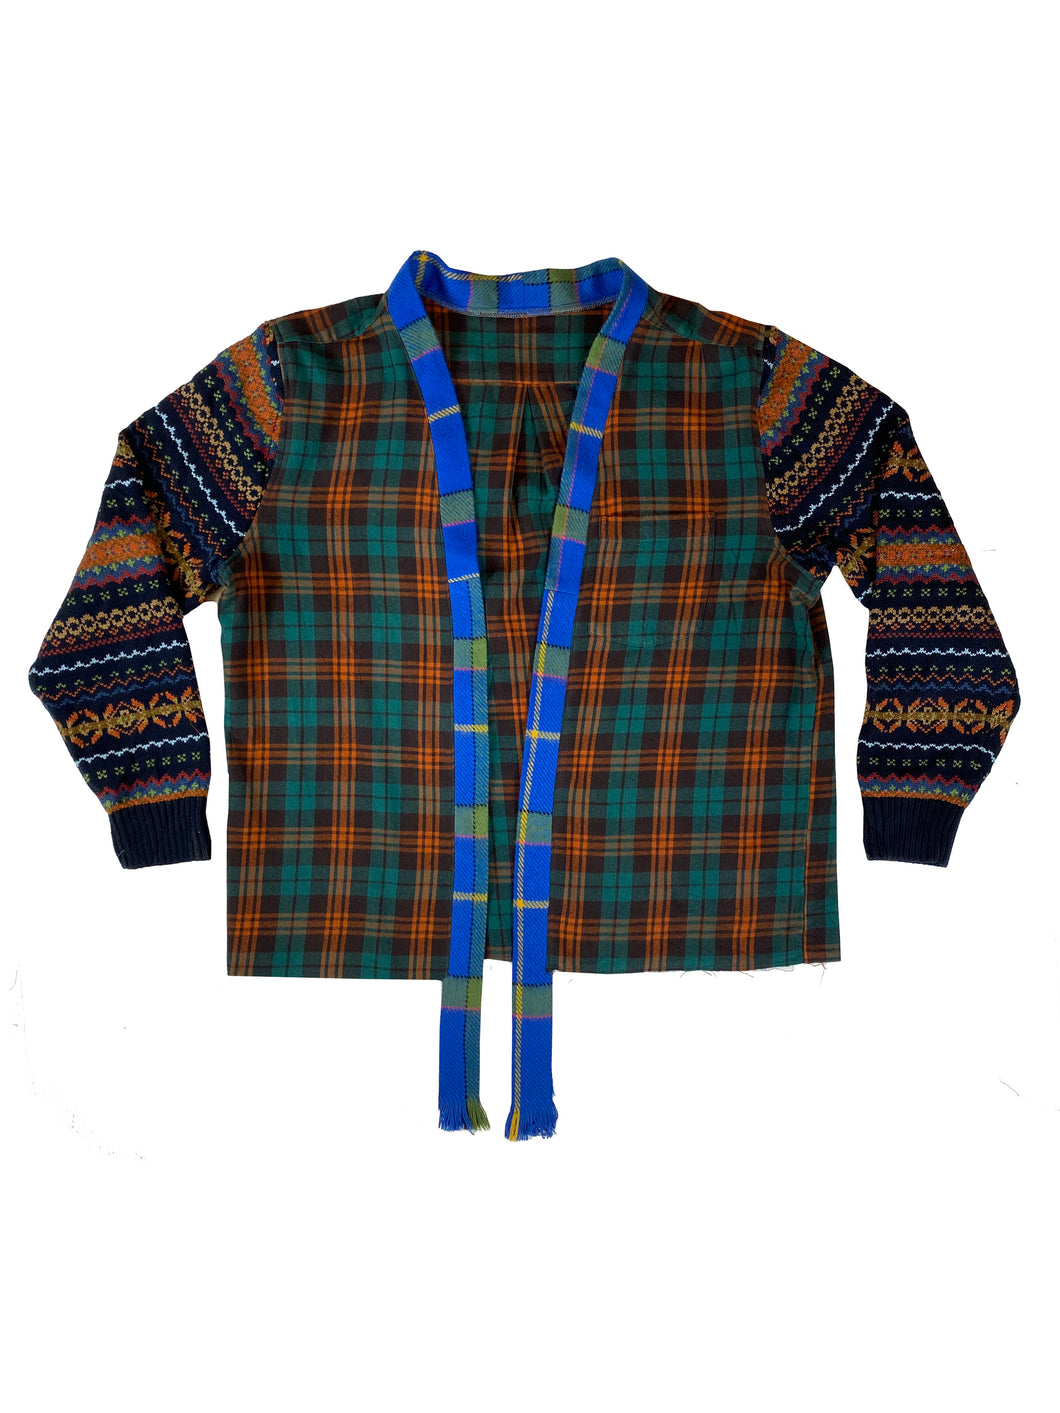 Flannel;Sweater Combo - Size XLarge